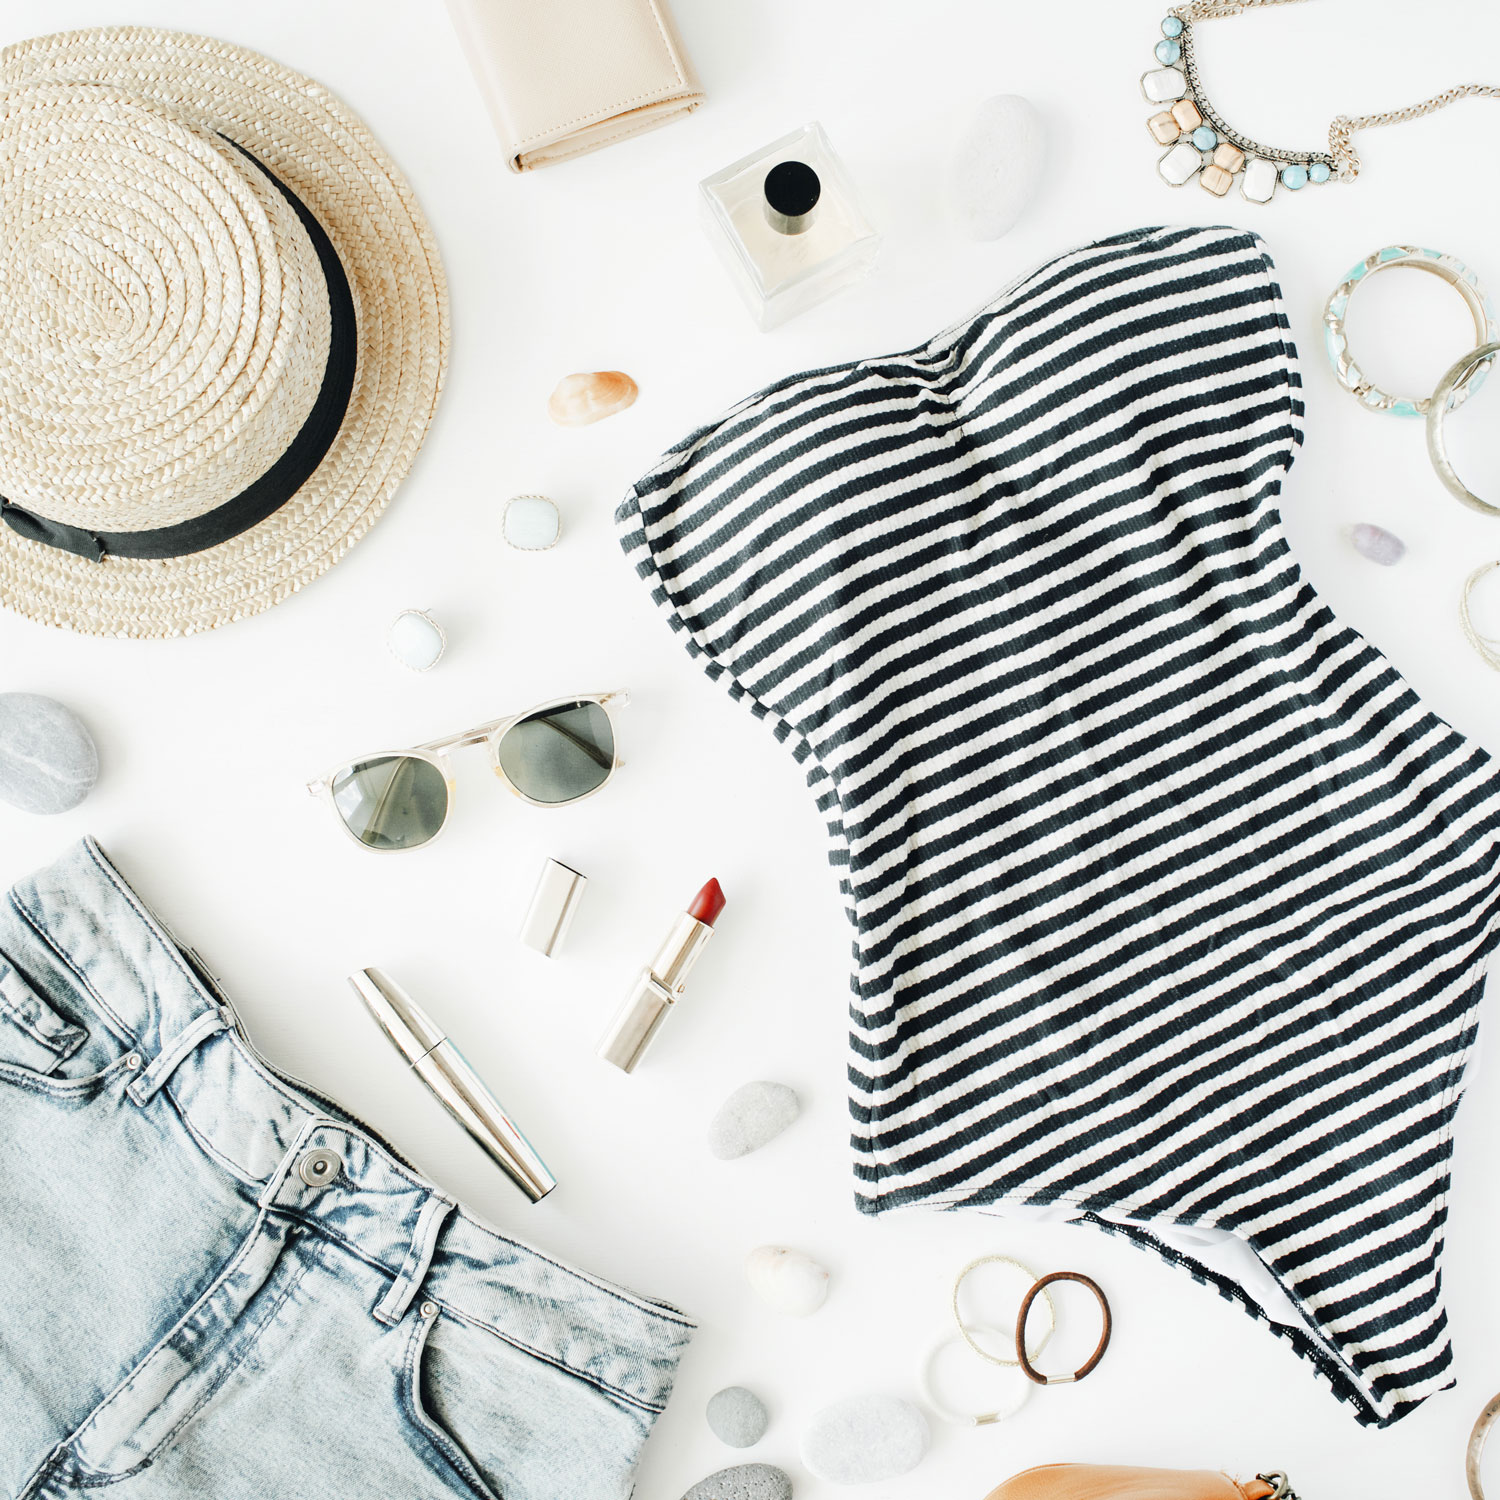 Striped one piece swimsuit - how to care for a swimsuit